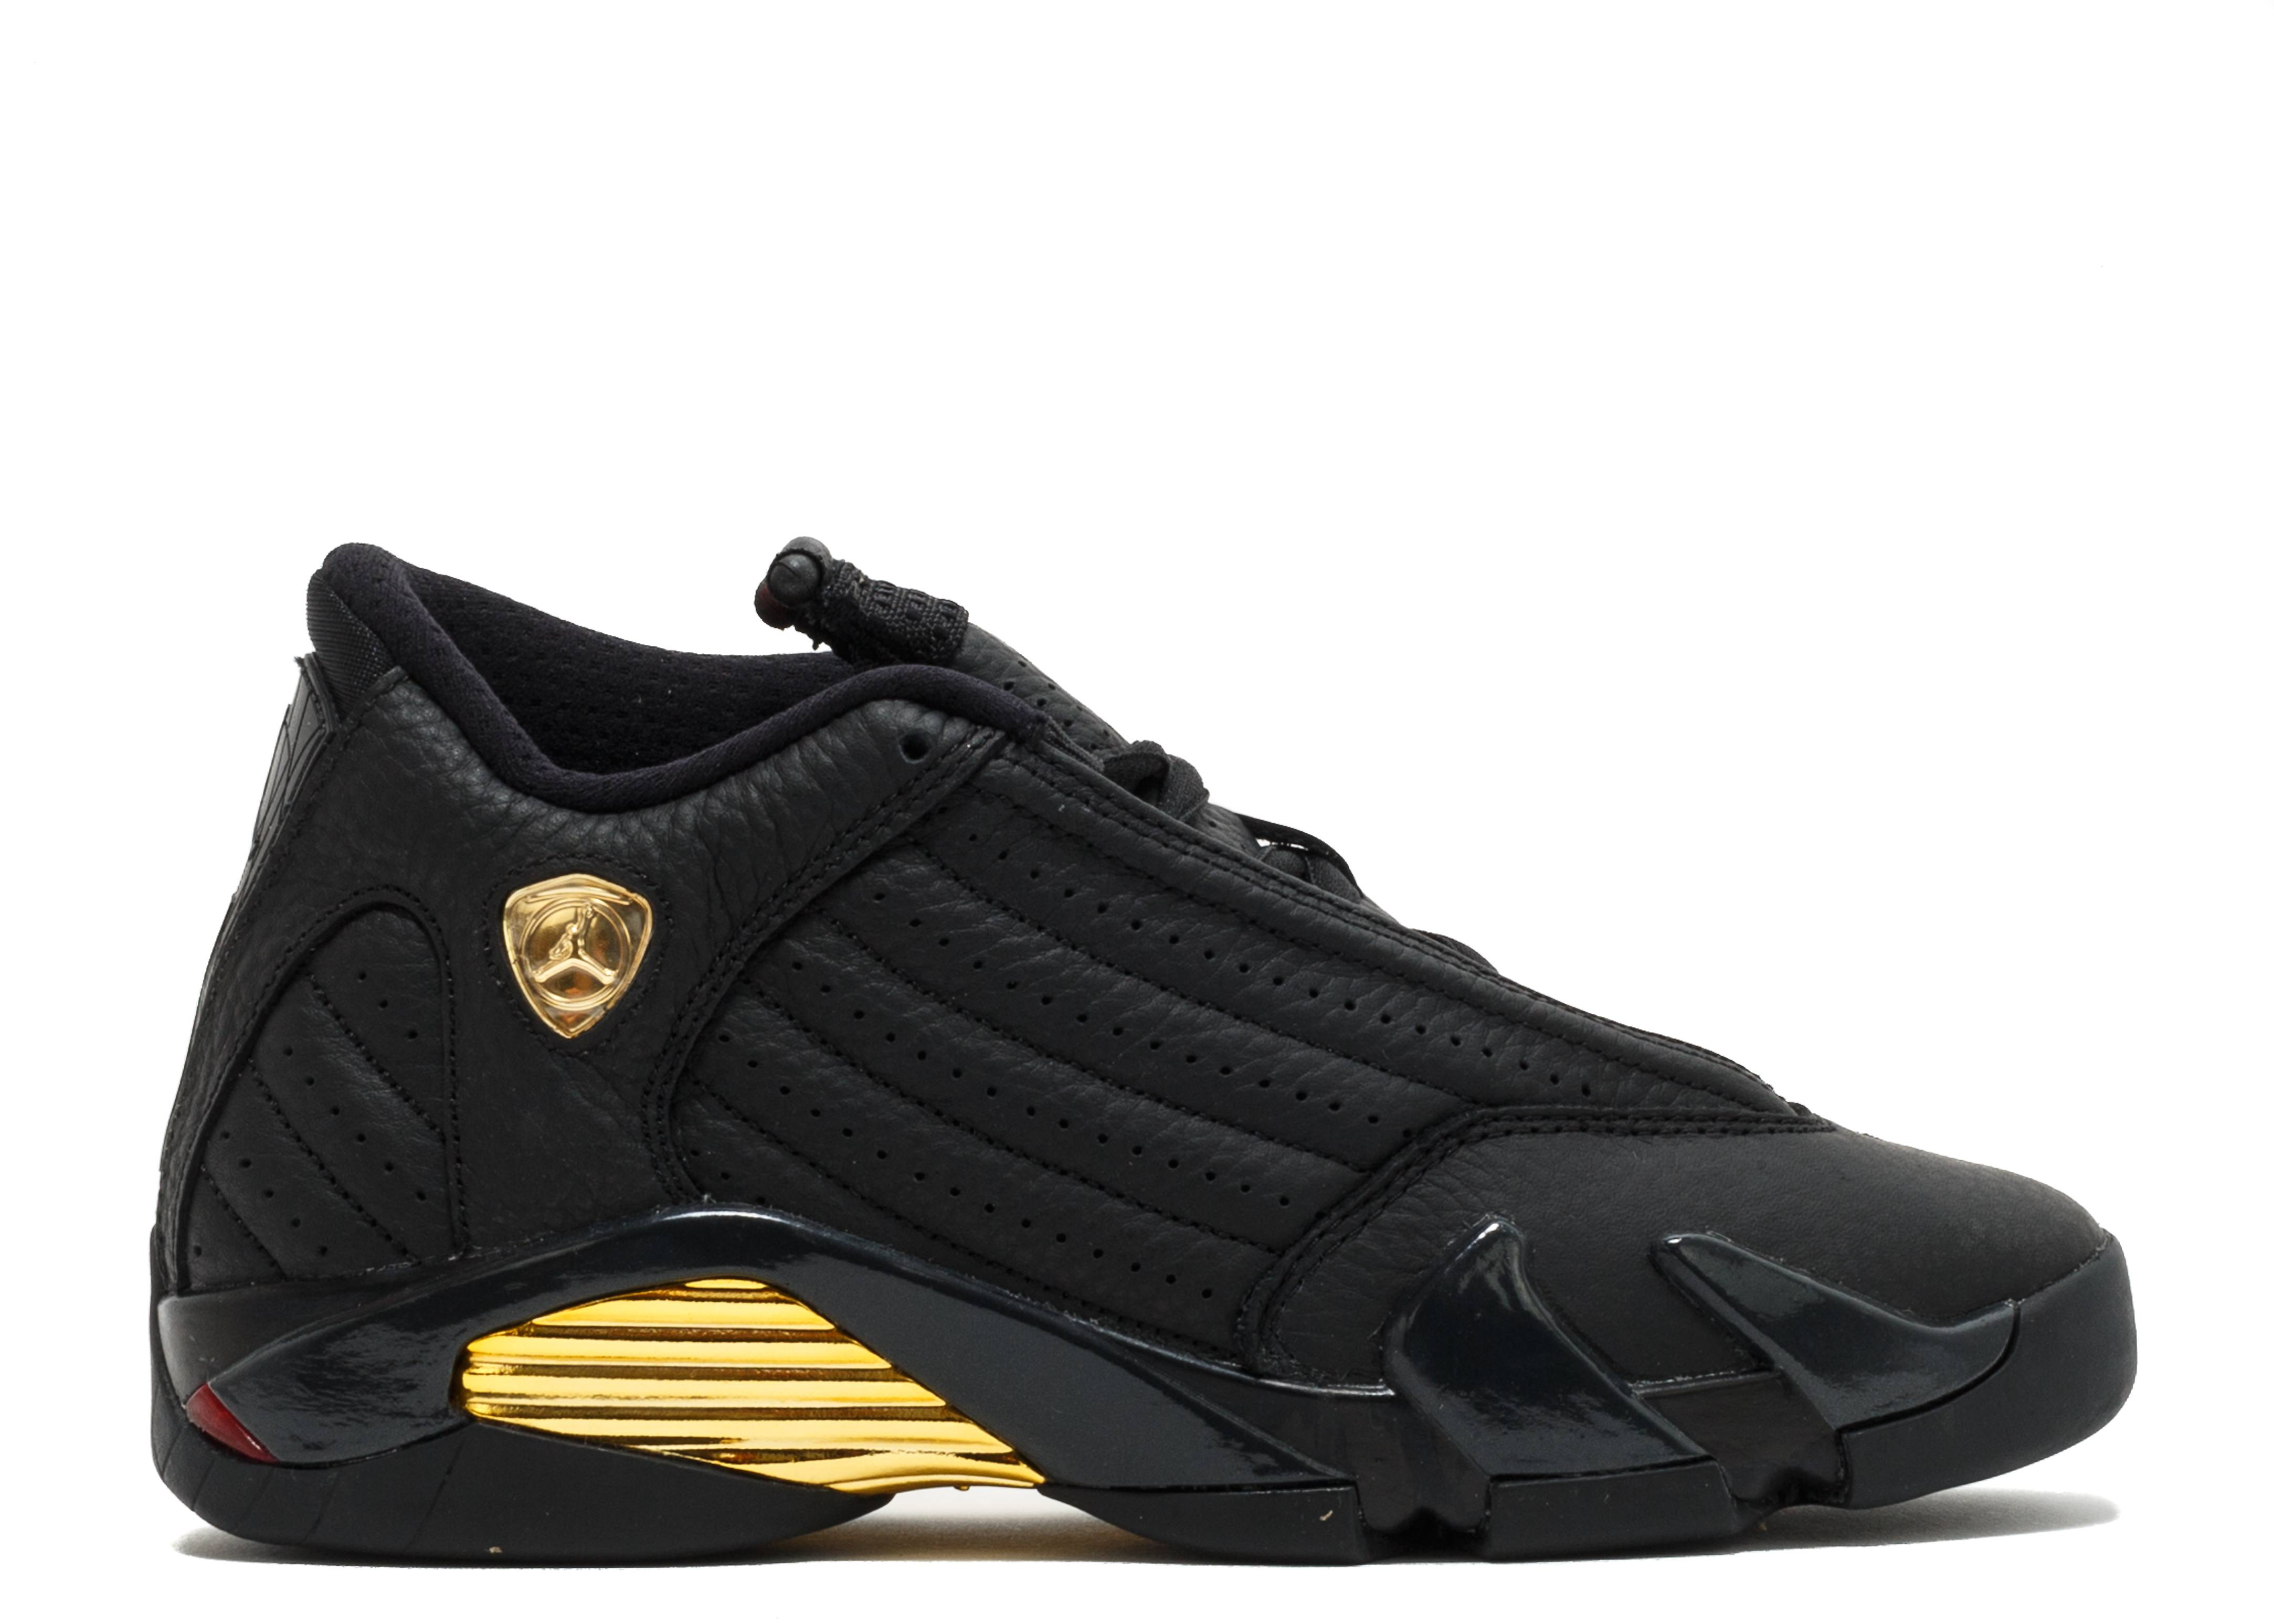 d4e2c036a83 Air Jordan 14 (XIV) Shoes - Nike | Flight Club